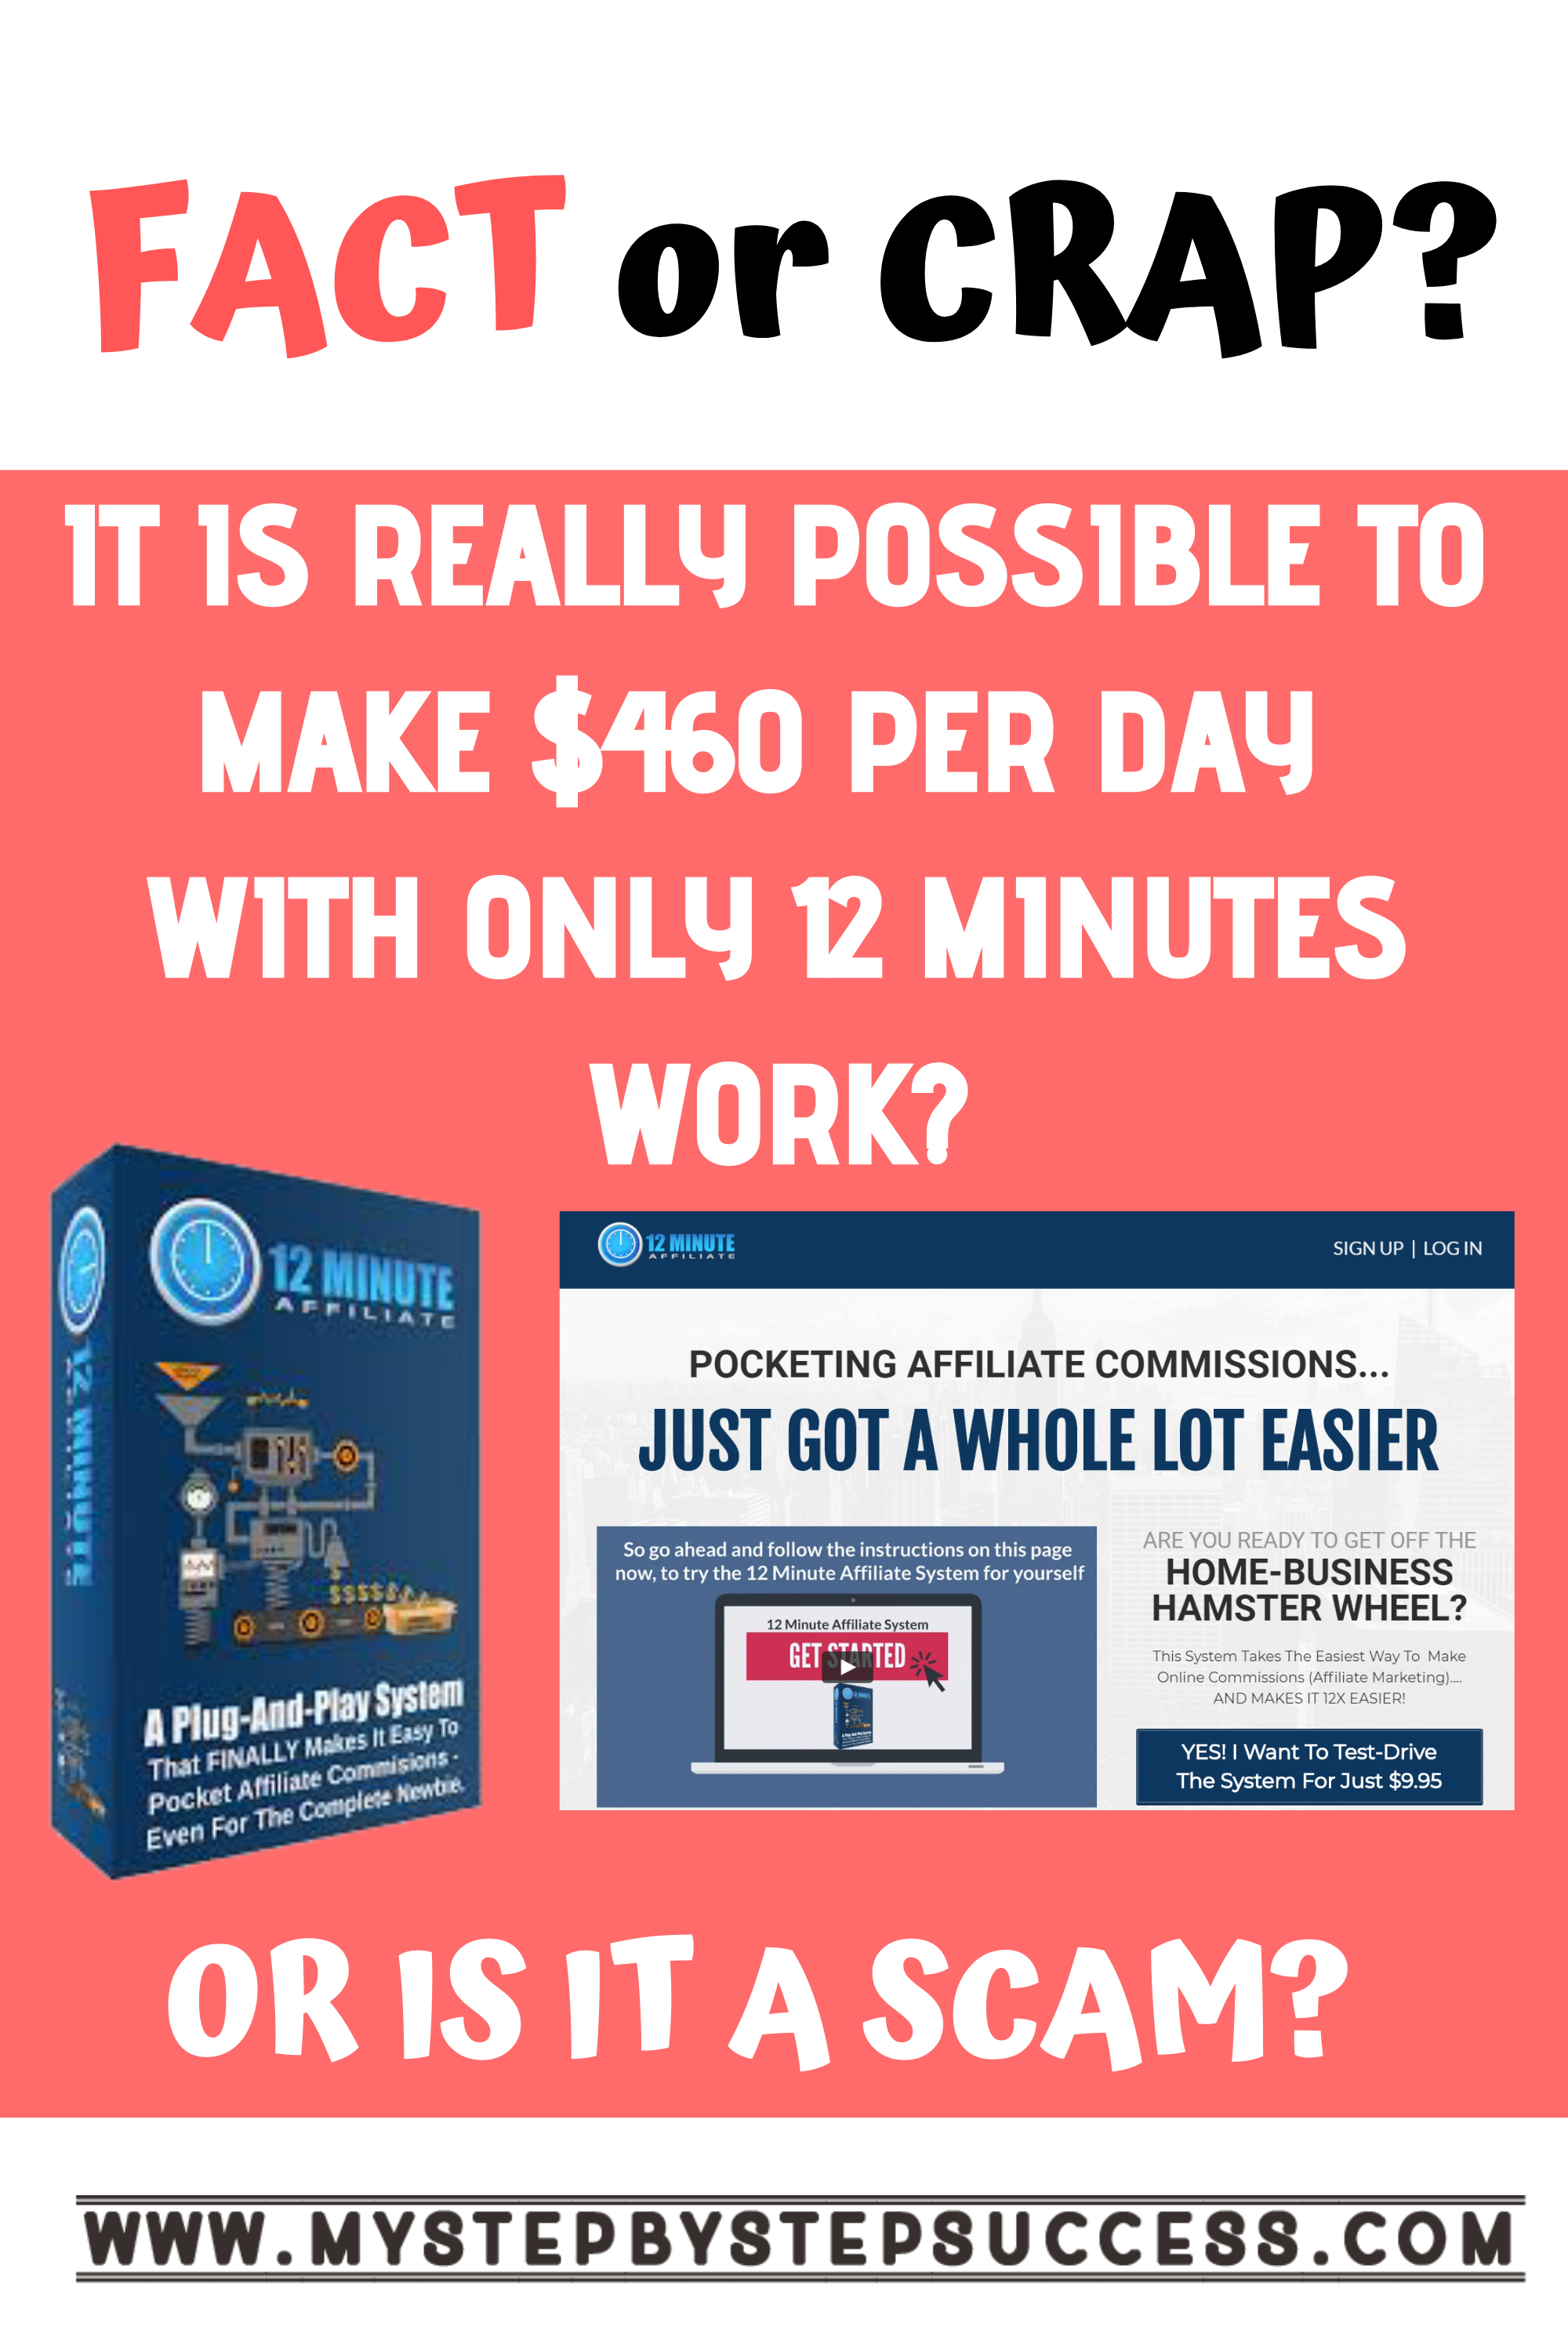 Why Buy 12 Minute Affiliate System